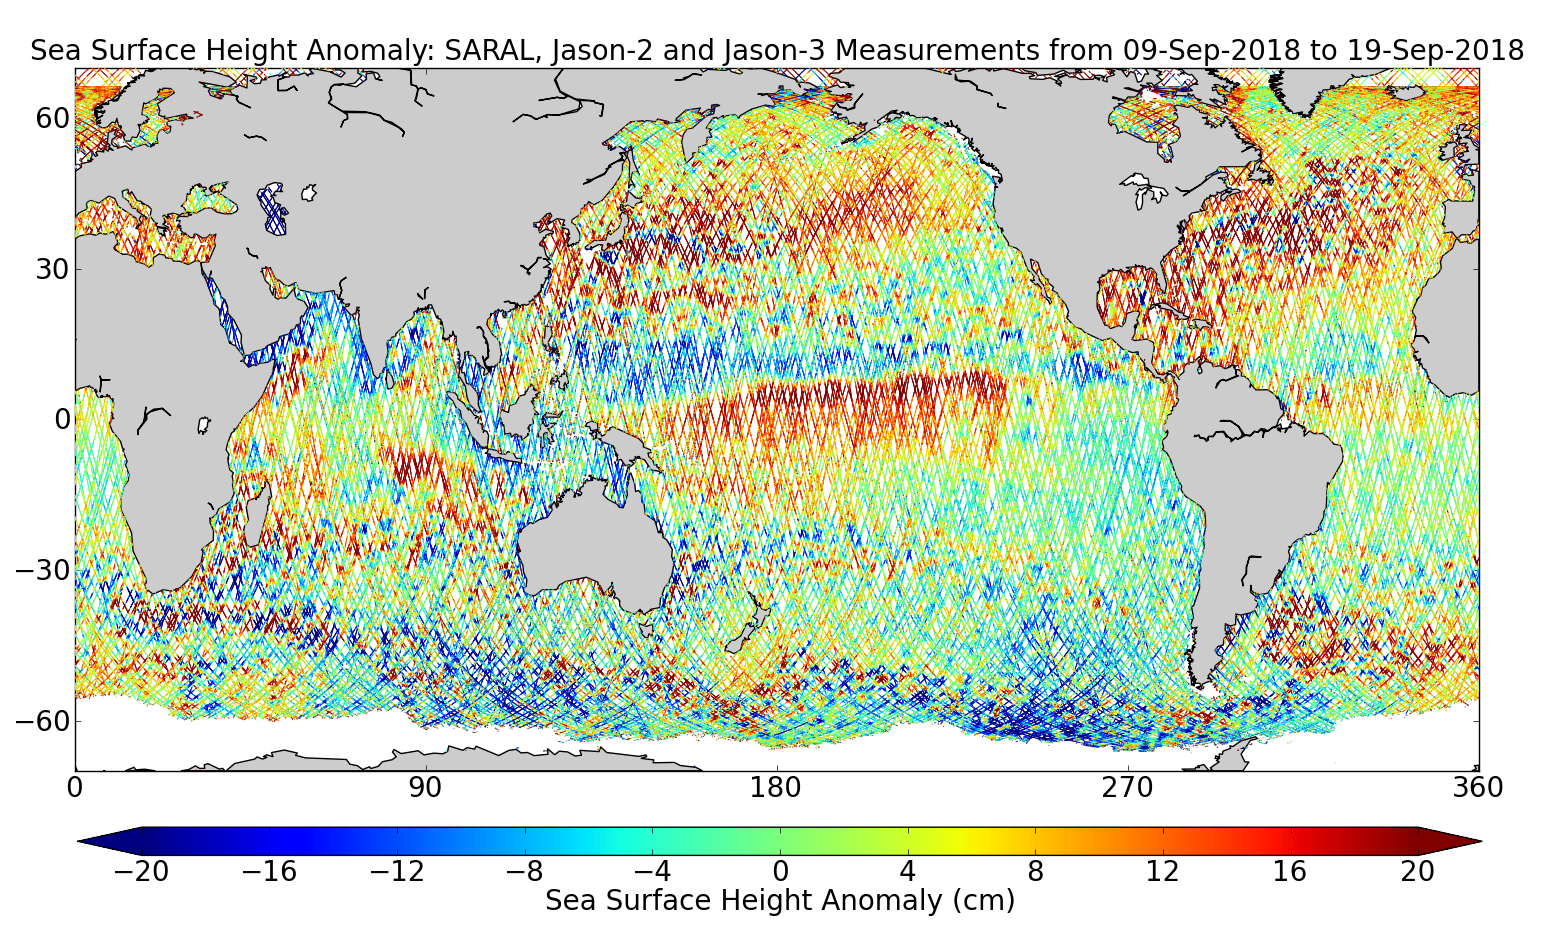 Sea Surface Height Anomaly: SARAL, Jason-2 and Jason-3 Measurements from 09-Sep-2018 to 19-Sep-2018